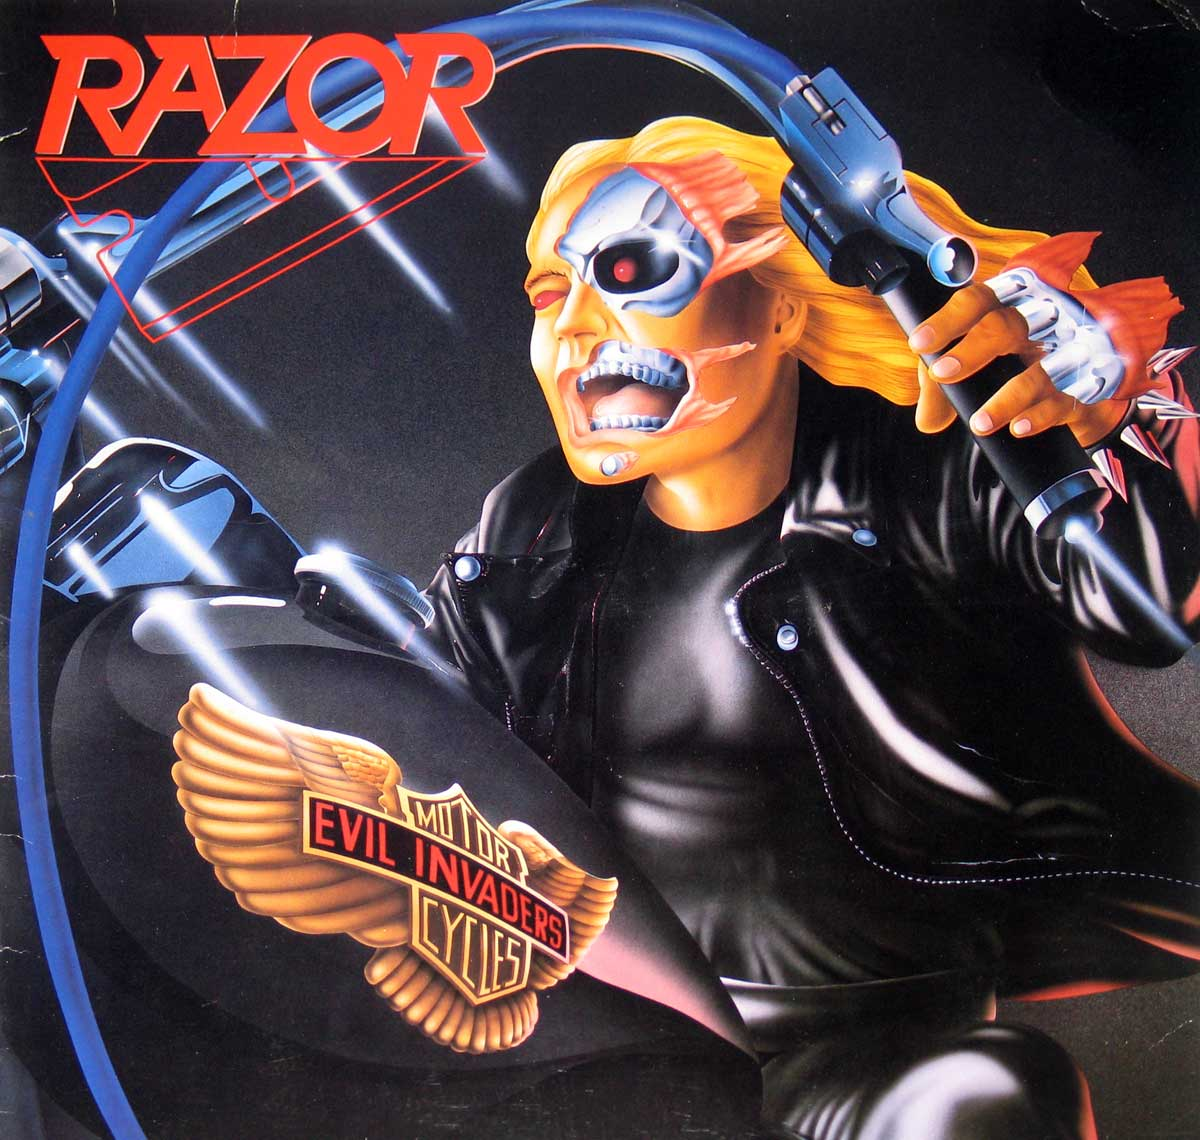 large photo of the album front cover of: Razor Evil Invaders